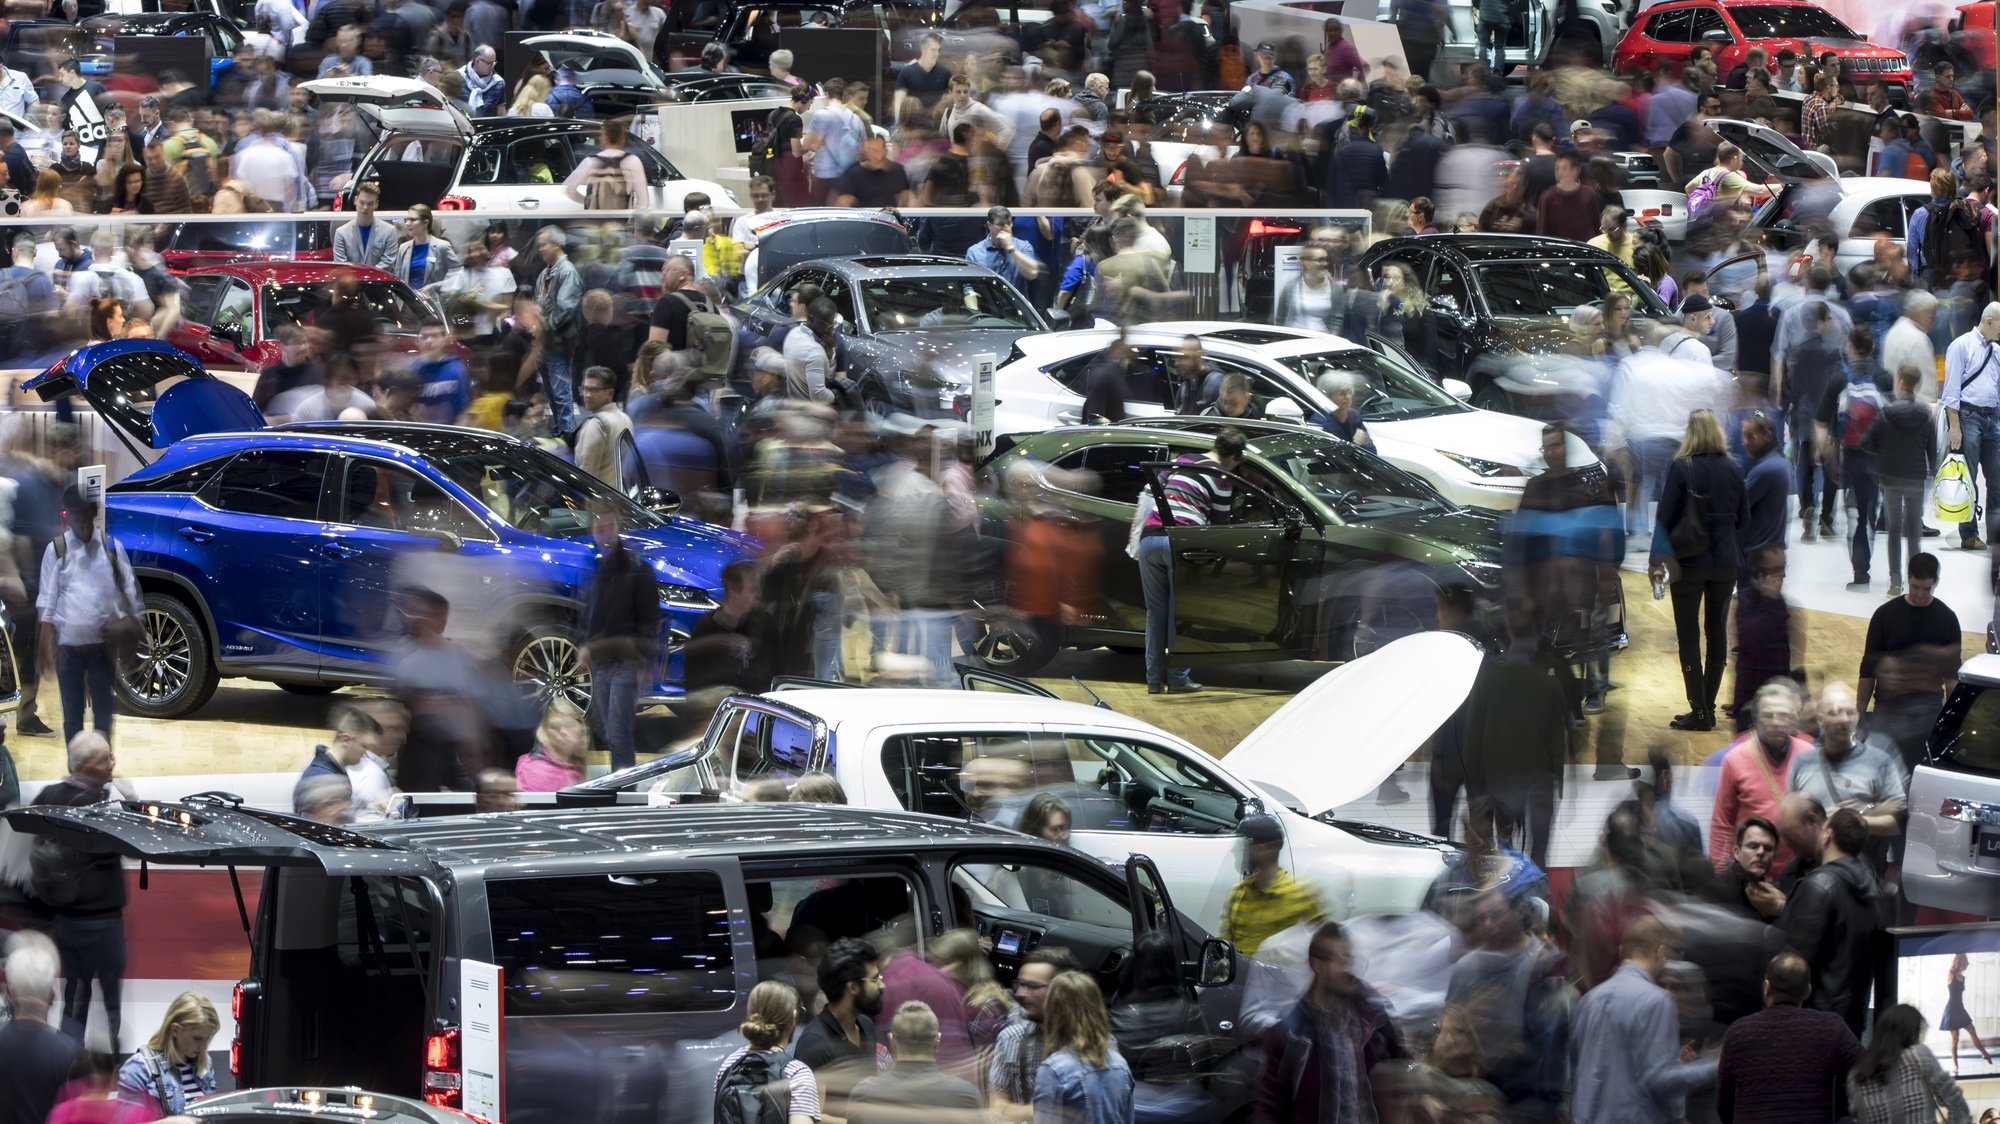 epa07442306 epa07442253 People look at cars as they visit the 89th Geneva International Motor Show, in Geneva, Switzerland, 16 March 2019. The Motor Show open its gates to the public from 07 to 17 March, presenting more than 180 exhibitors and more than 100 world and European premieres.  EPA/LAURENT GILLIERON  EPA-EFE/LAURENT GILLIERON